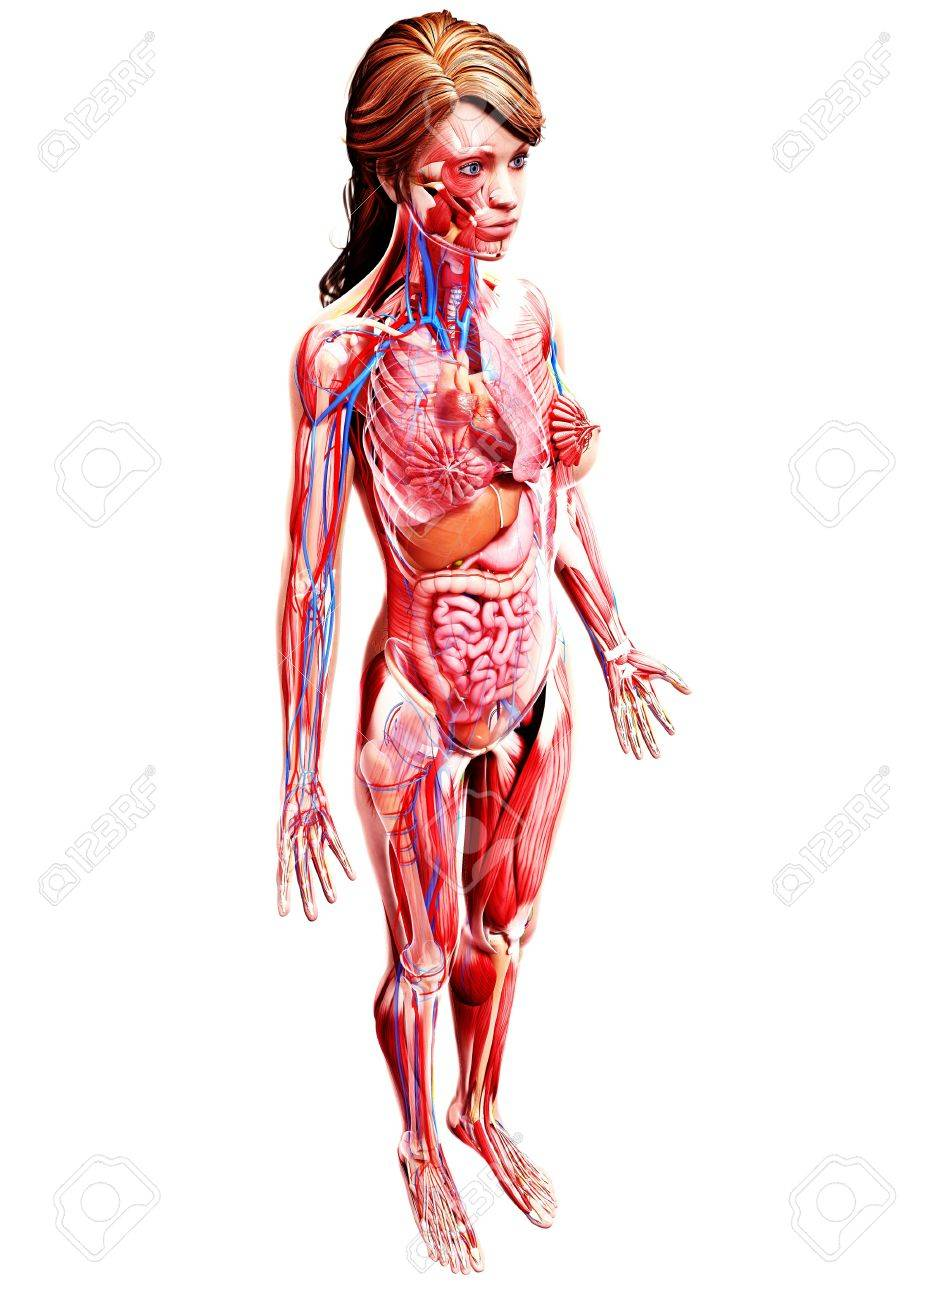 Female Anatomy,computer Artwork Stock Photo, Picture And Royalty ...